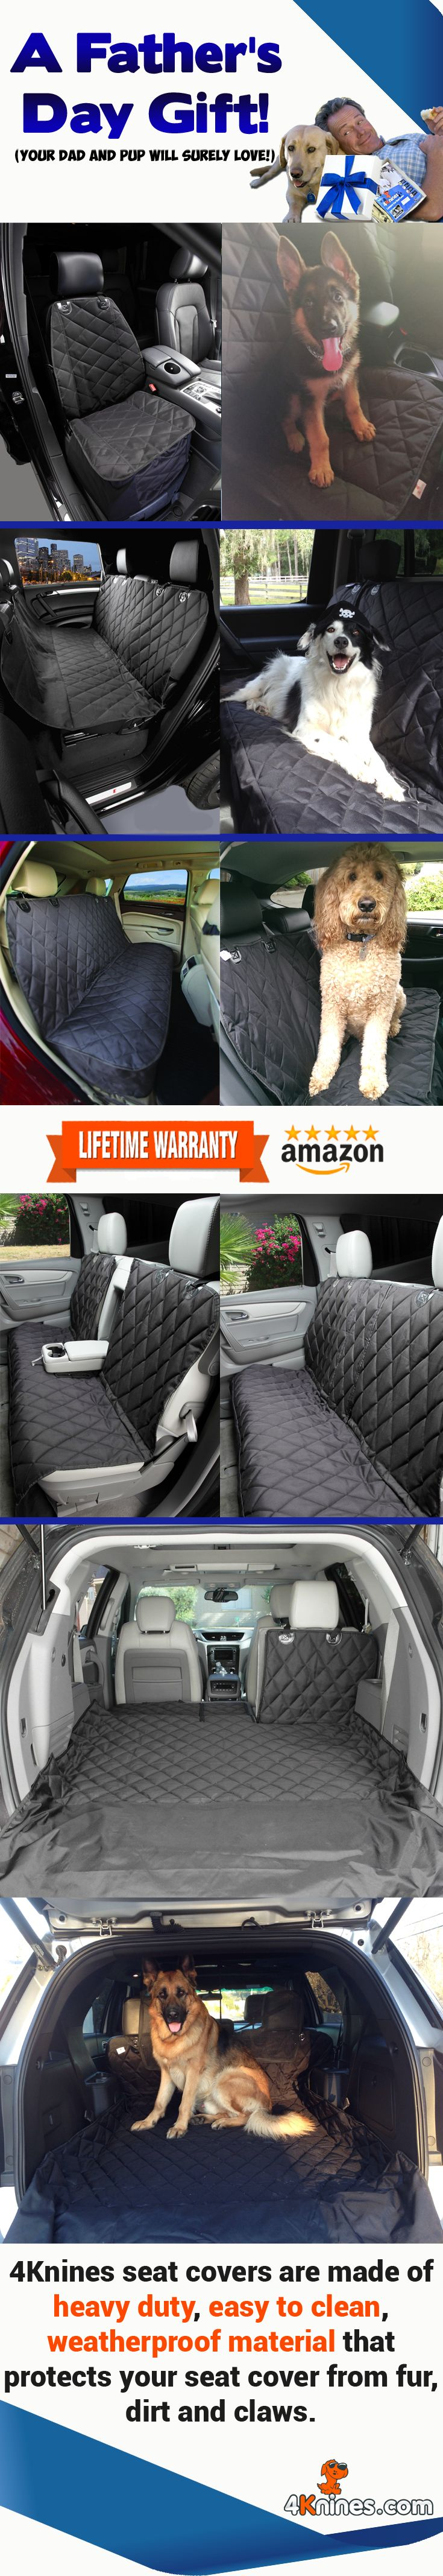 Great Father's Day Gift Idea. 4Knines Car Seat Covers and Cargo Liners will protect his car when traveling with his furry best friend.  http://4knines.com/collections/all